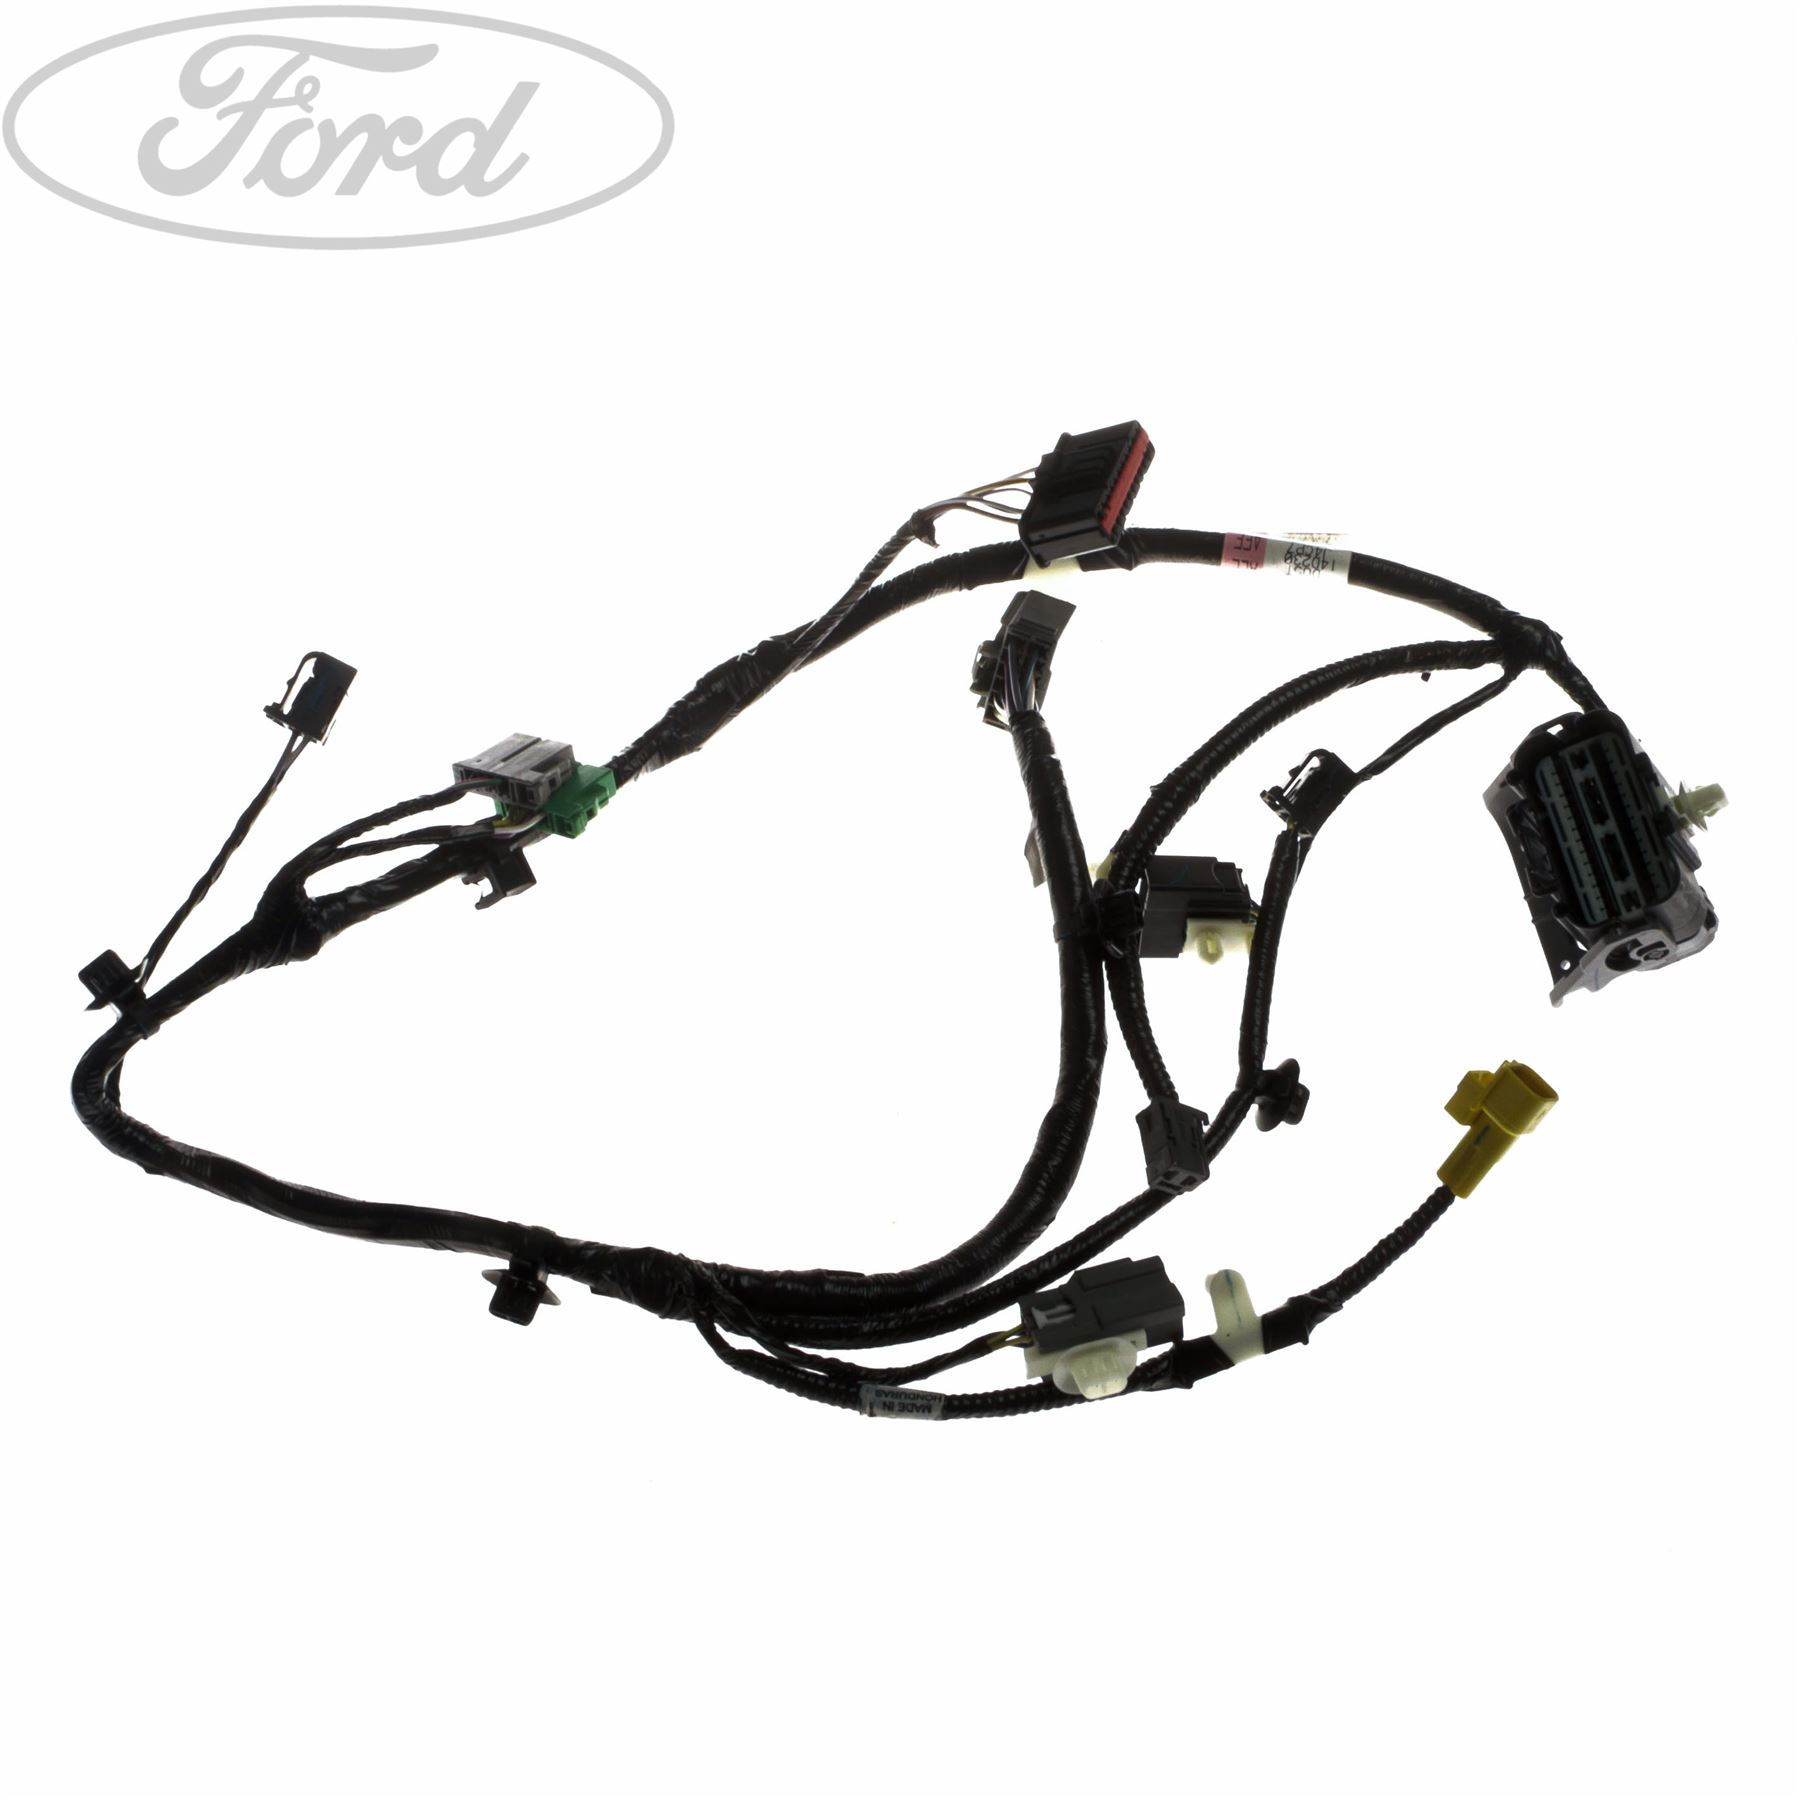 ford model a seats wiring diagram database 1997 Ford Truck genuine ford kuga mk2 o s front seat lower base wiring loom heated ford model a furniture